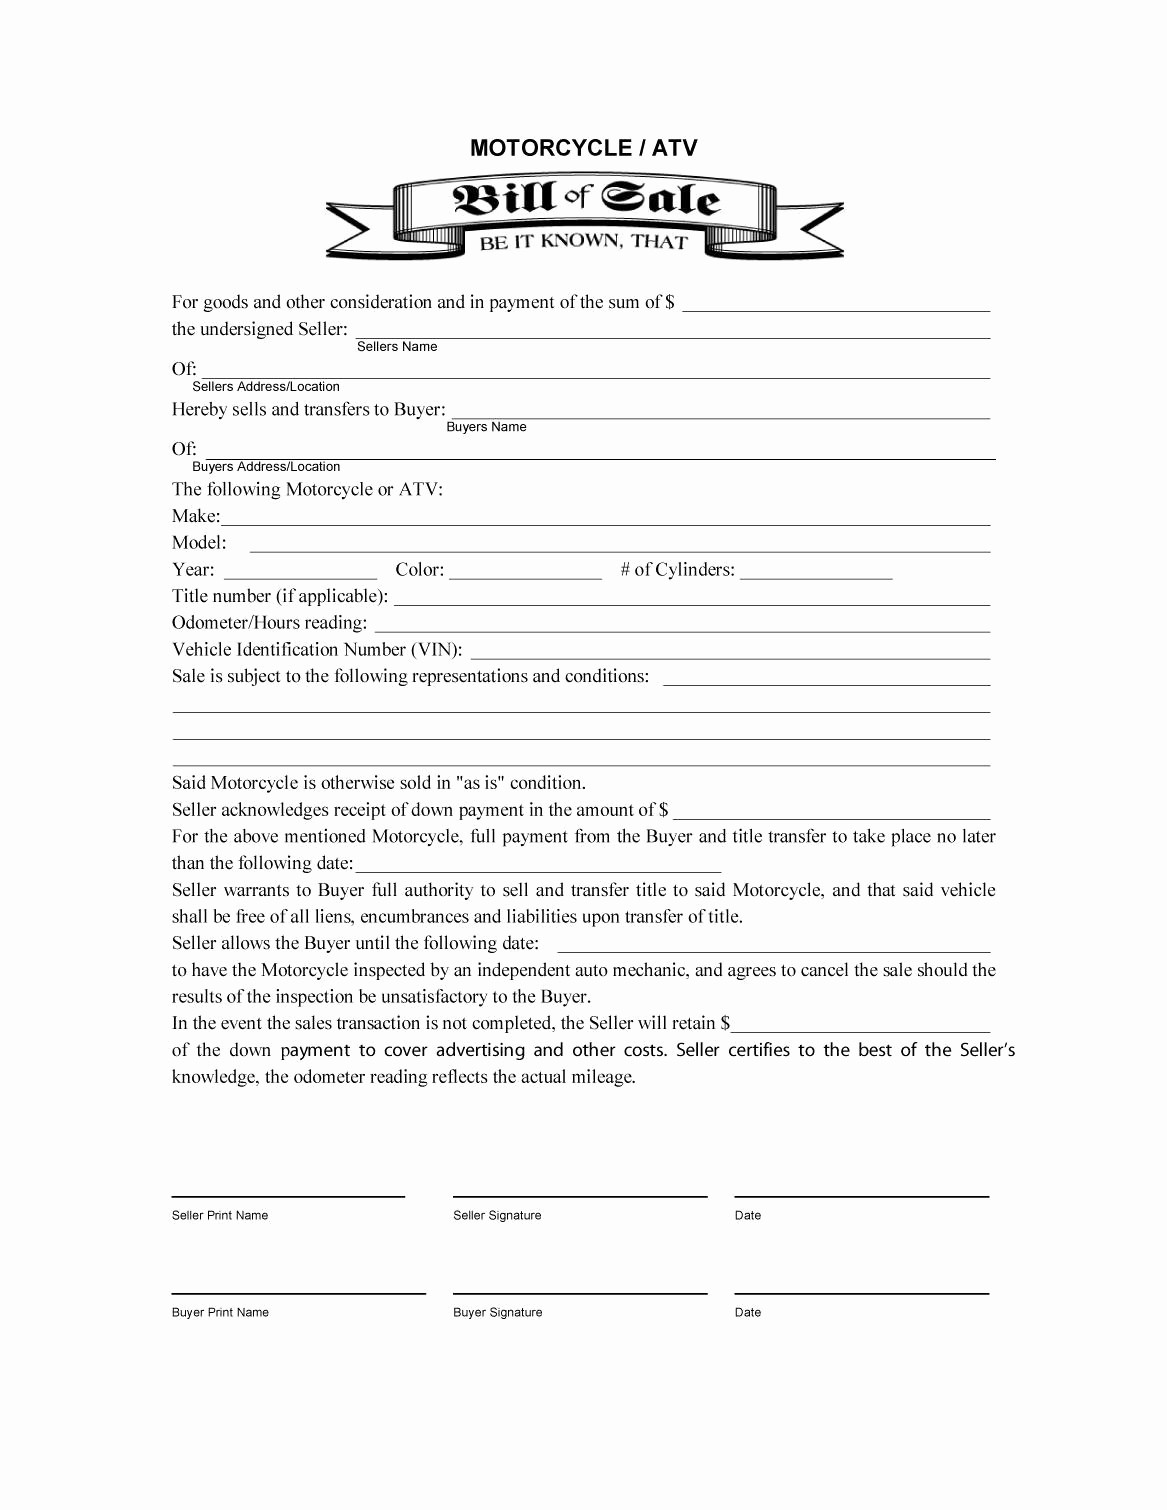 Bill Of Sale Template Download Lovely 45 Fee Printable Bill Of Sale Templates Car Boat Gun